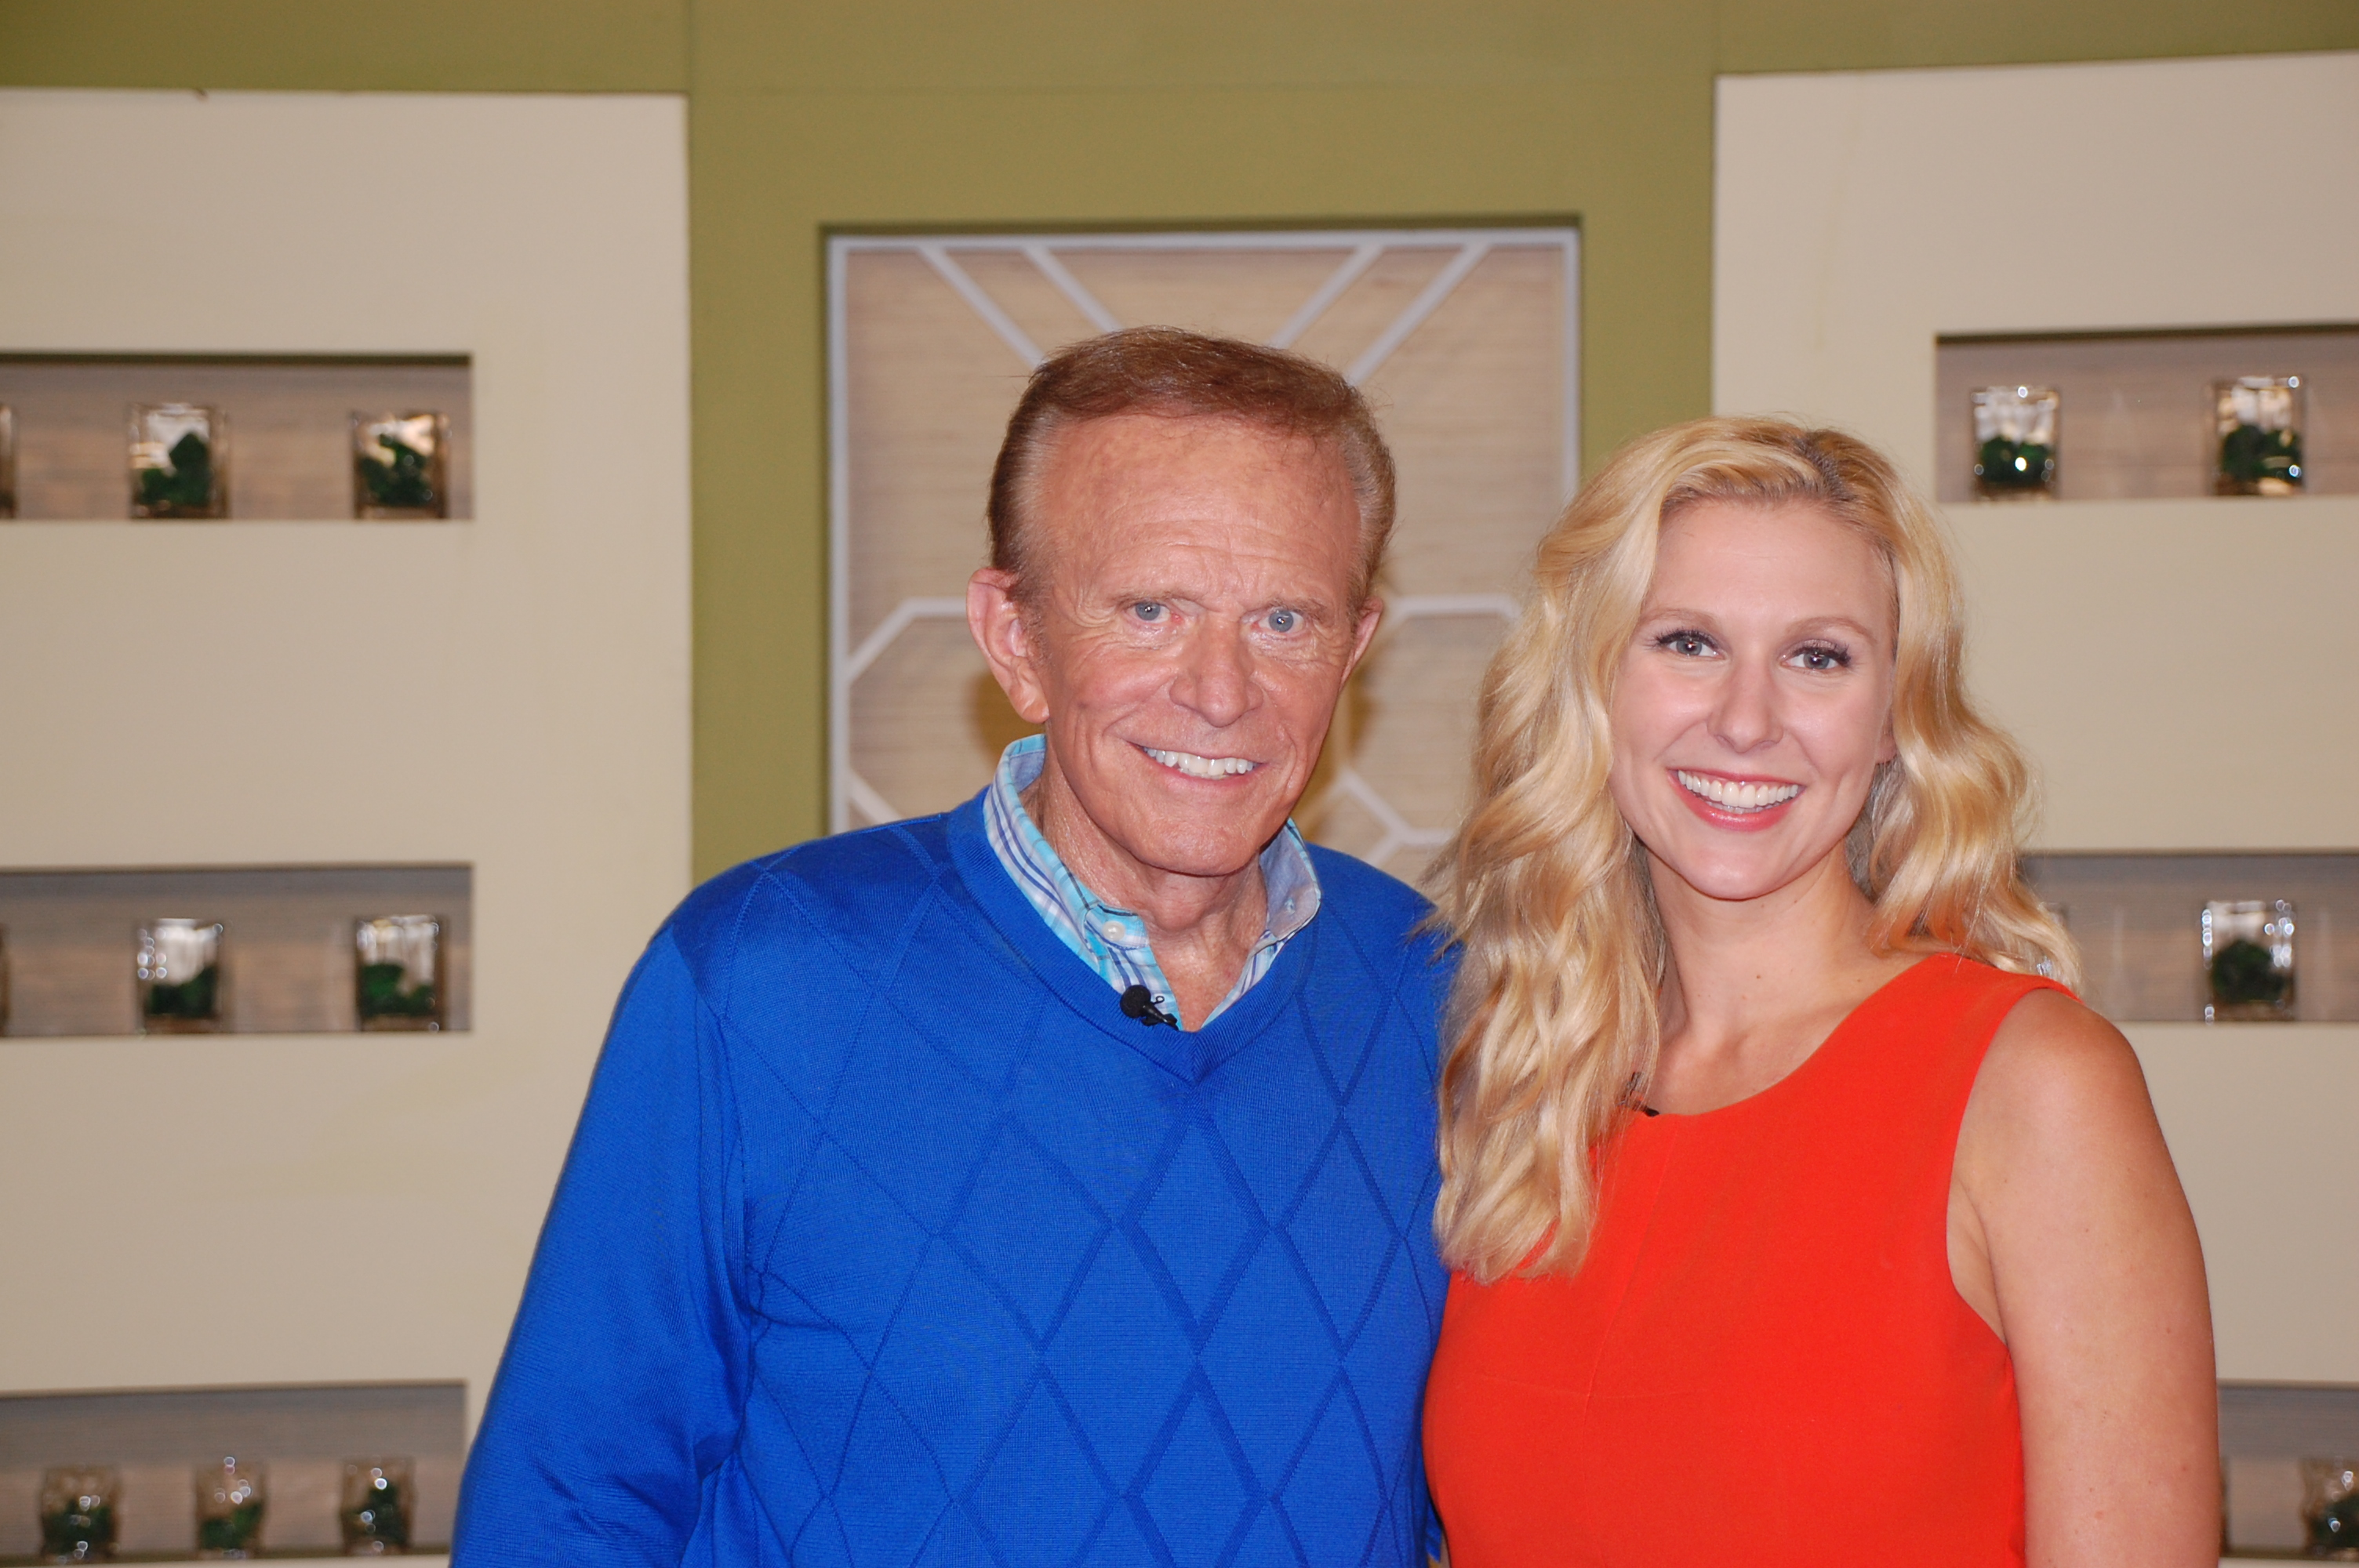 Bob Eubanks and Natasha Lloyd